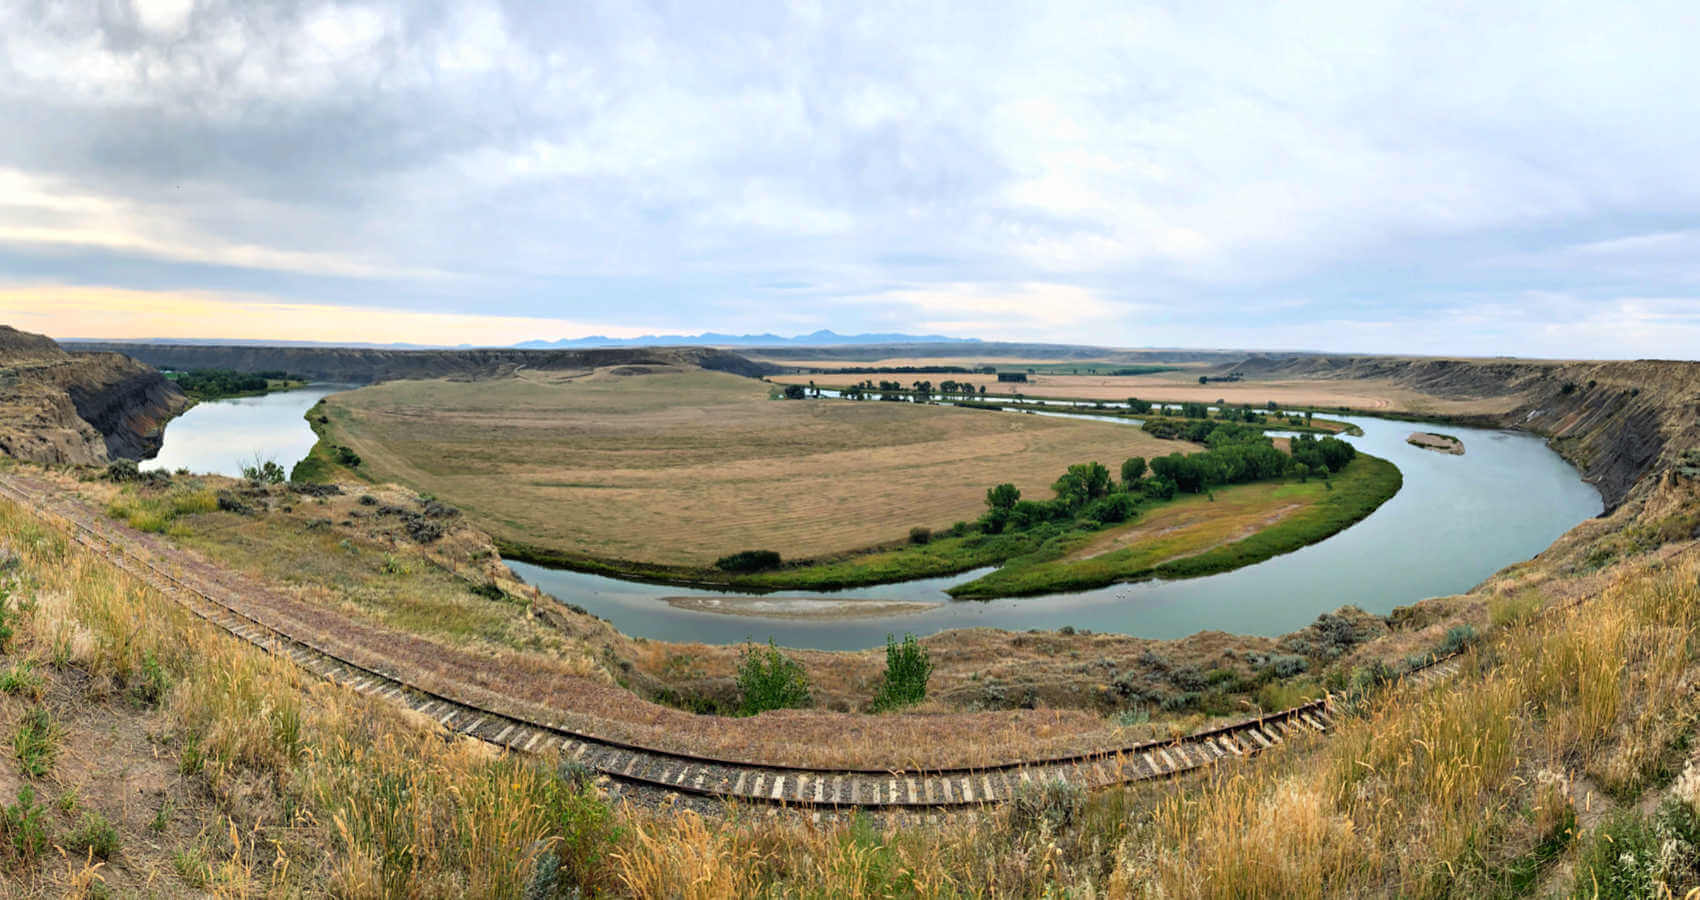 Scenic overlook outside Fort Benton, Montana, Highway 87